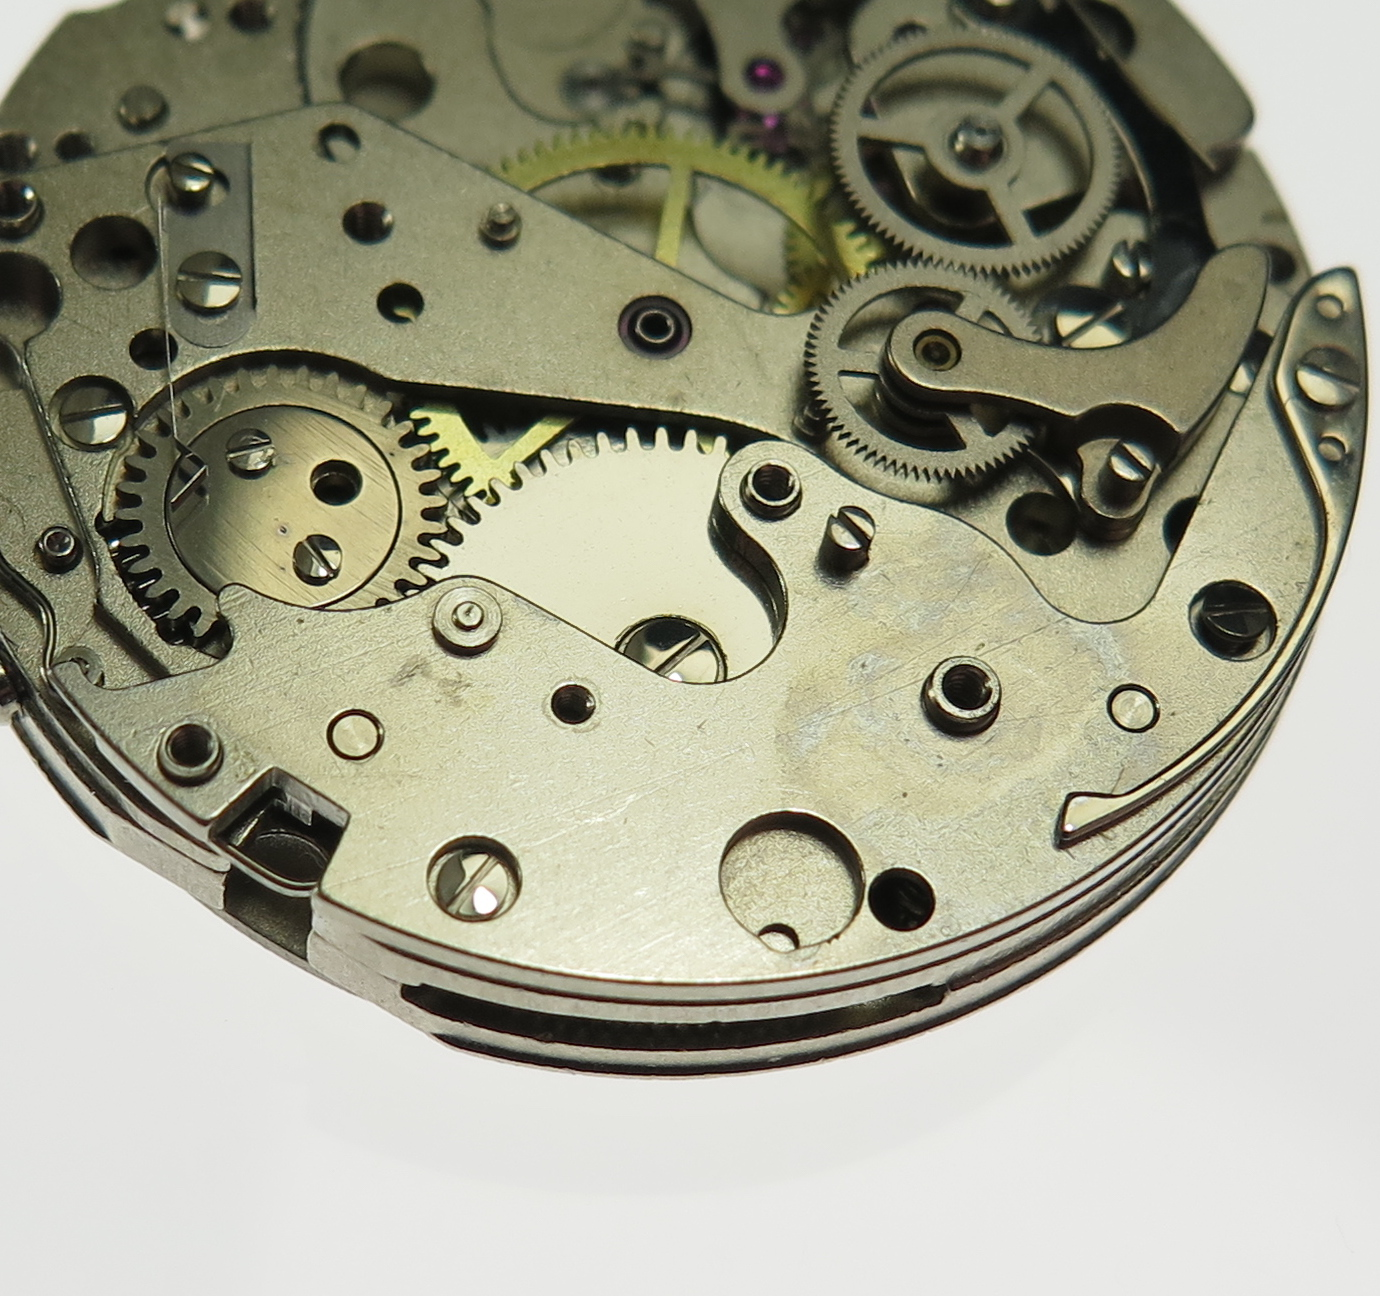 Chrono-plate. Covering the ratchet wheel granting the additional chronograph components surface area.